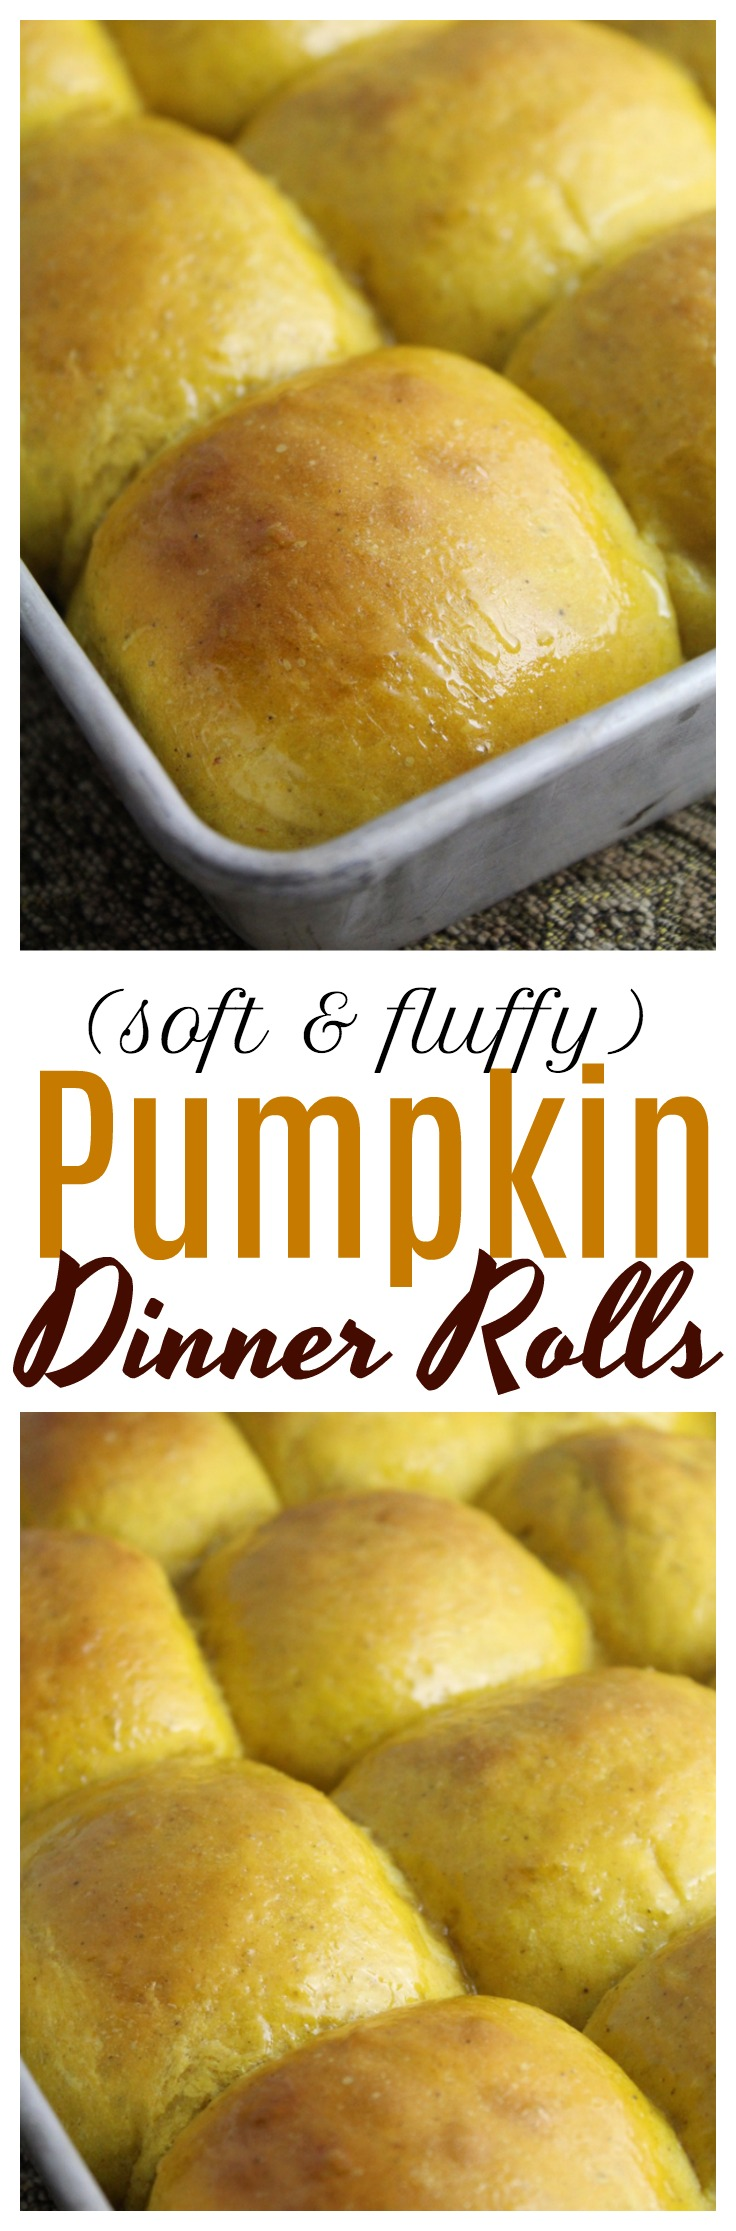 These pumpkin dinner rolls are light, fluffy, and perfect to serve along your next bowl or soup or Thanksgiving dinner with your family!